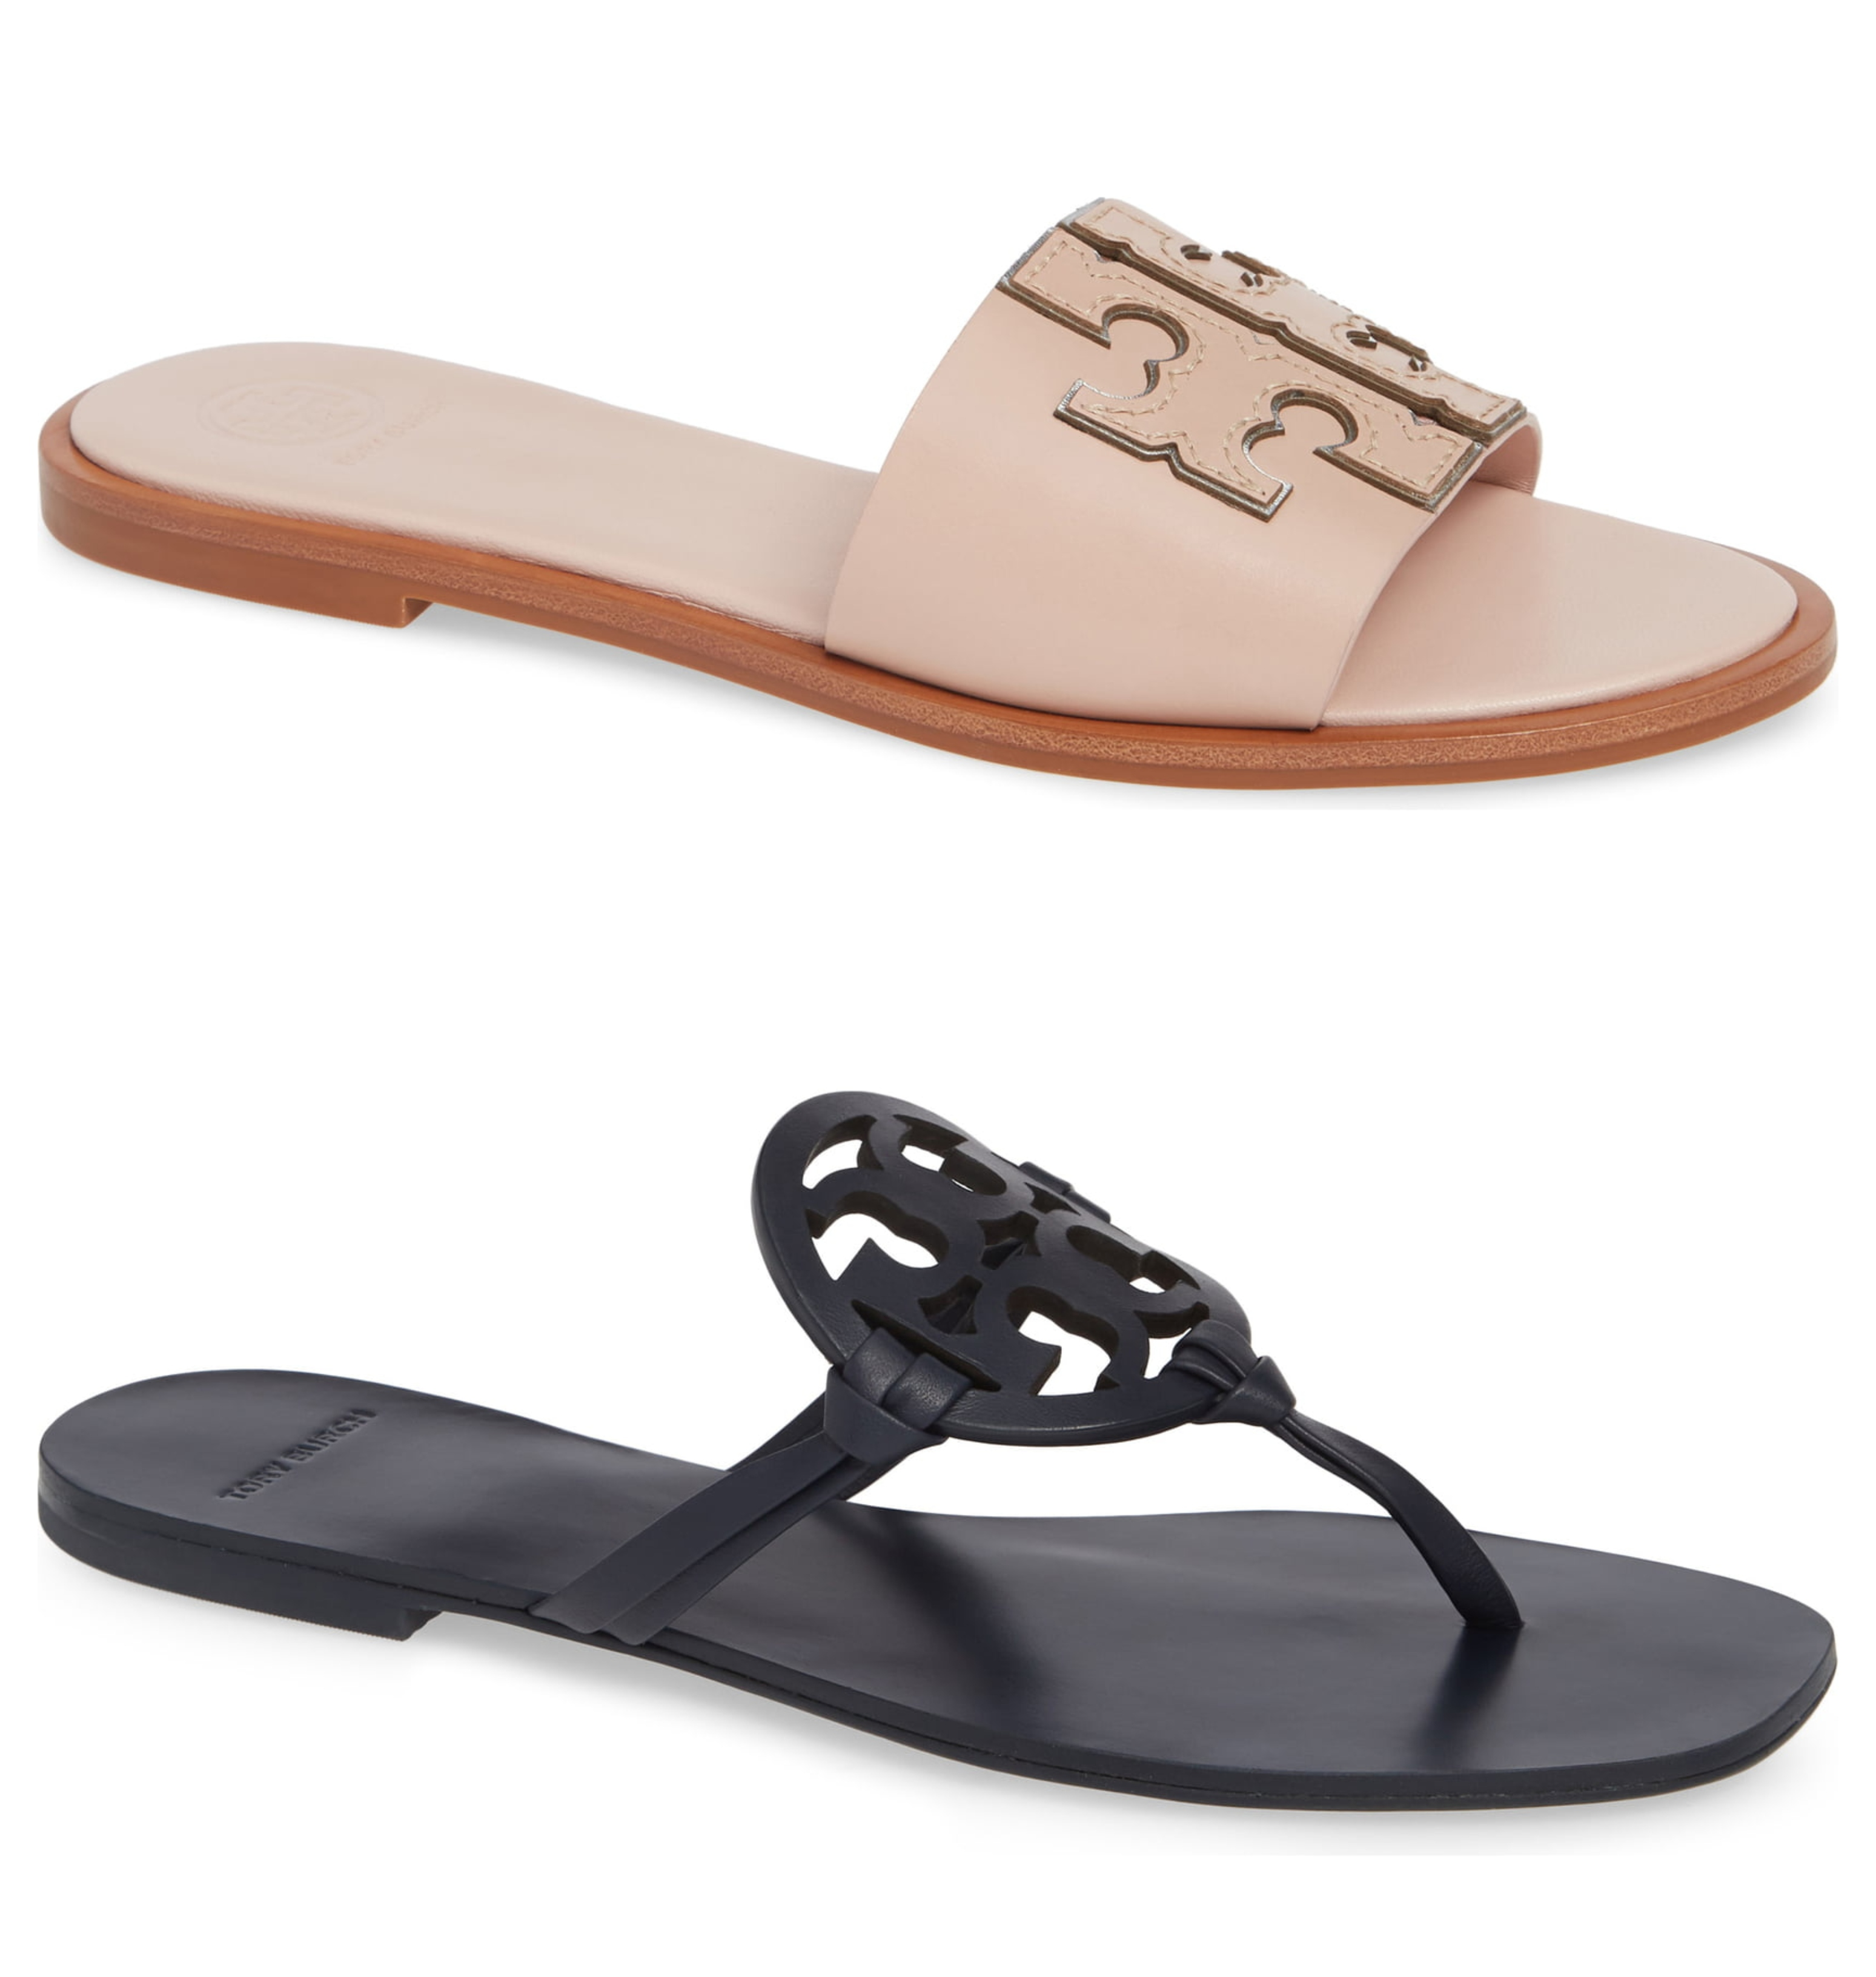 Tory Burch Sandals + Free Shipping